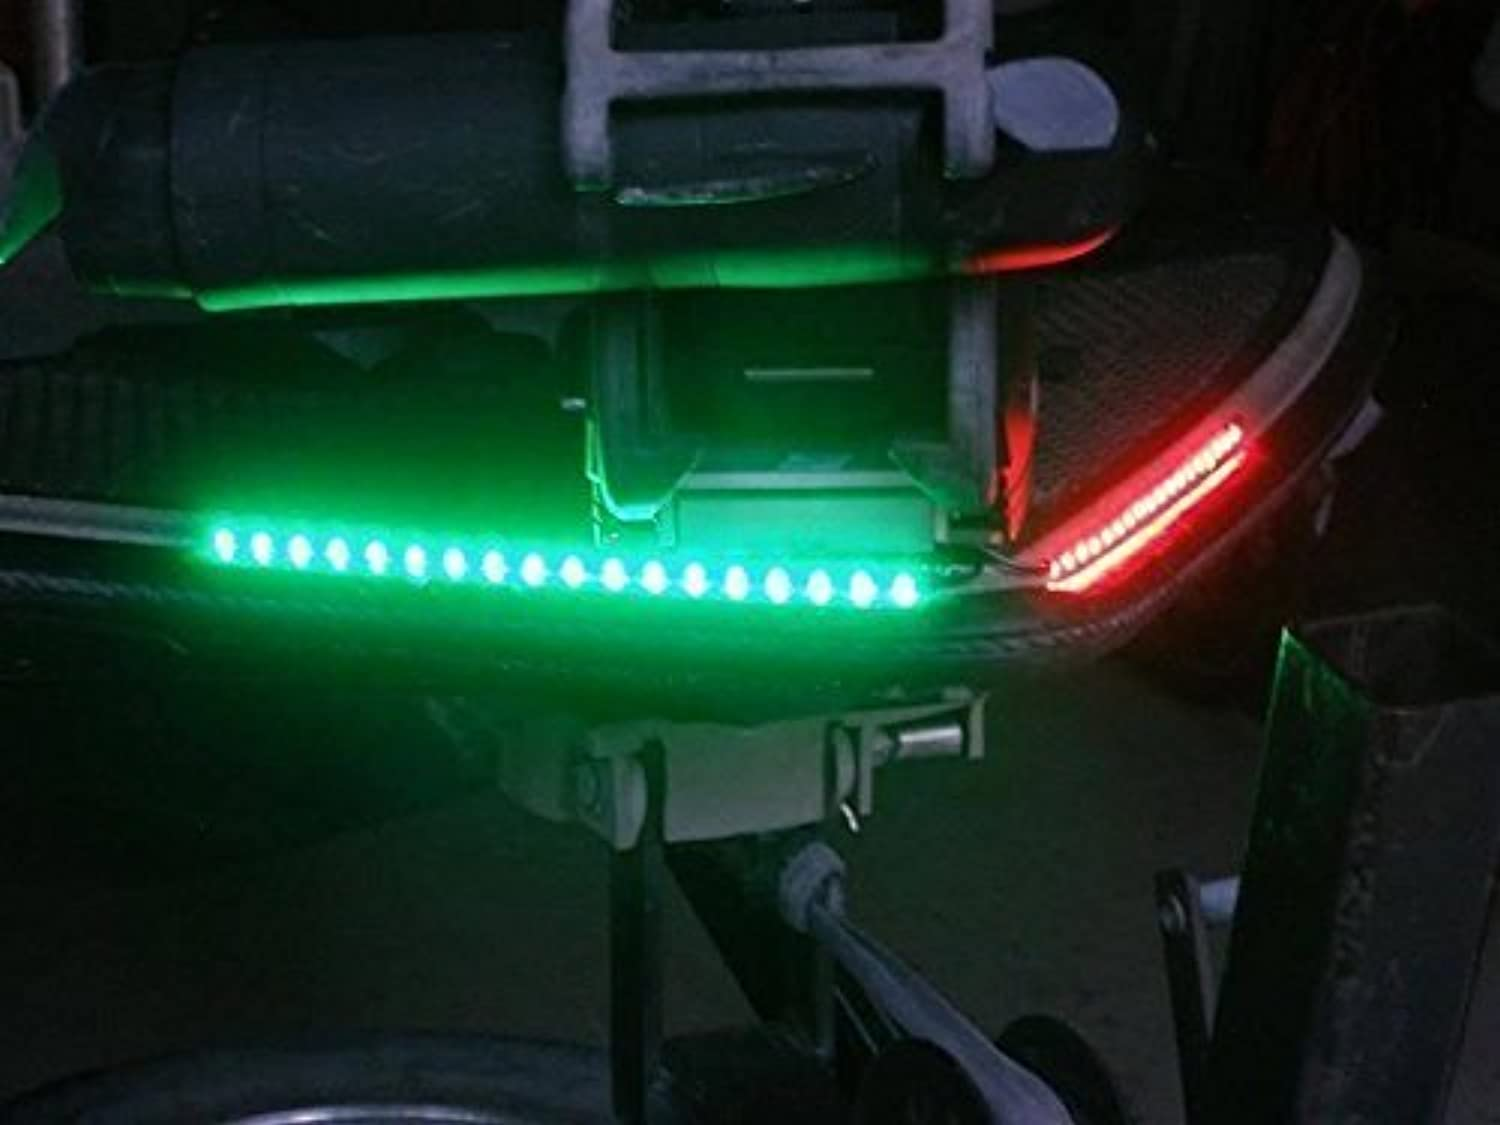 MUDCAT OUTDOORS EXCLUSIVE BOAT NAVIGATION LED LIGHT STRIPS RED & GREEN MARINE BASS TRITON RANGER TRITON by MUDCAT OUTDOORS